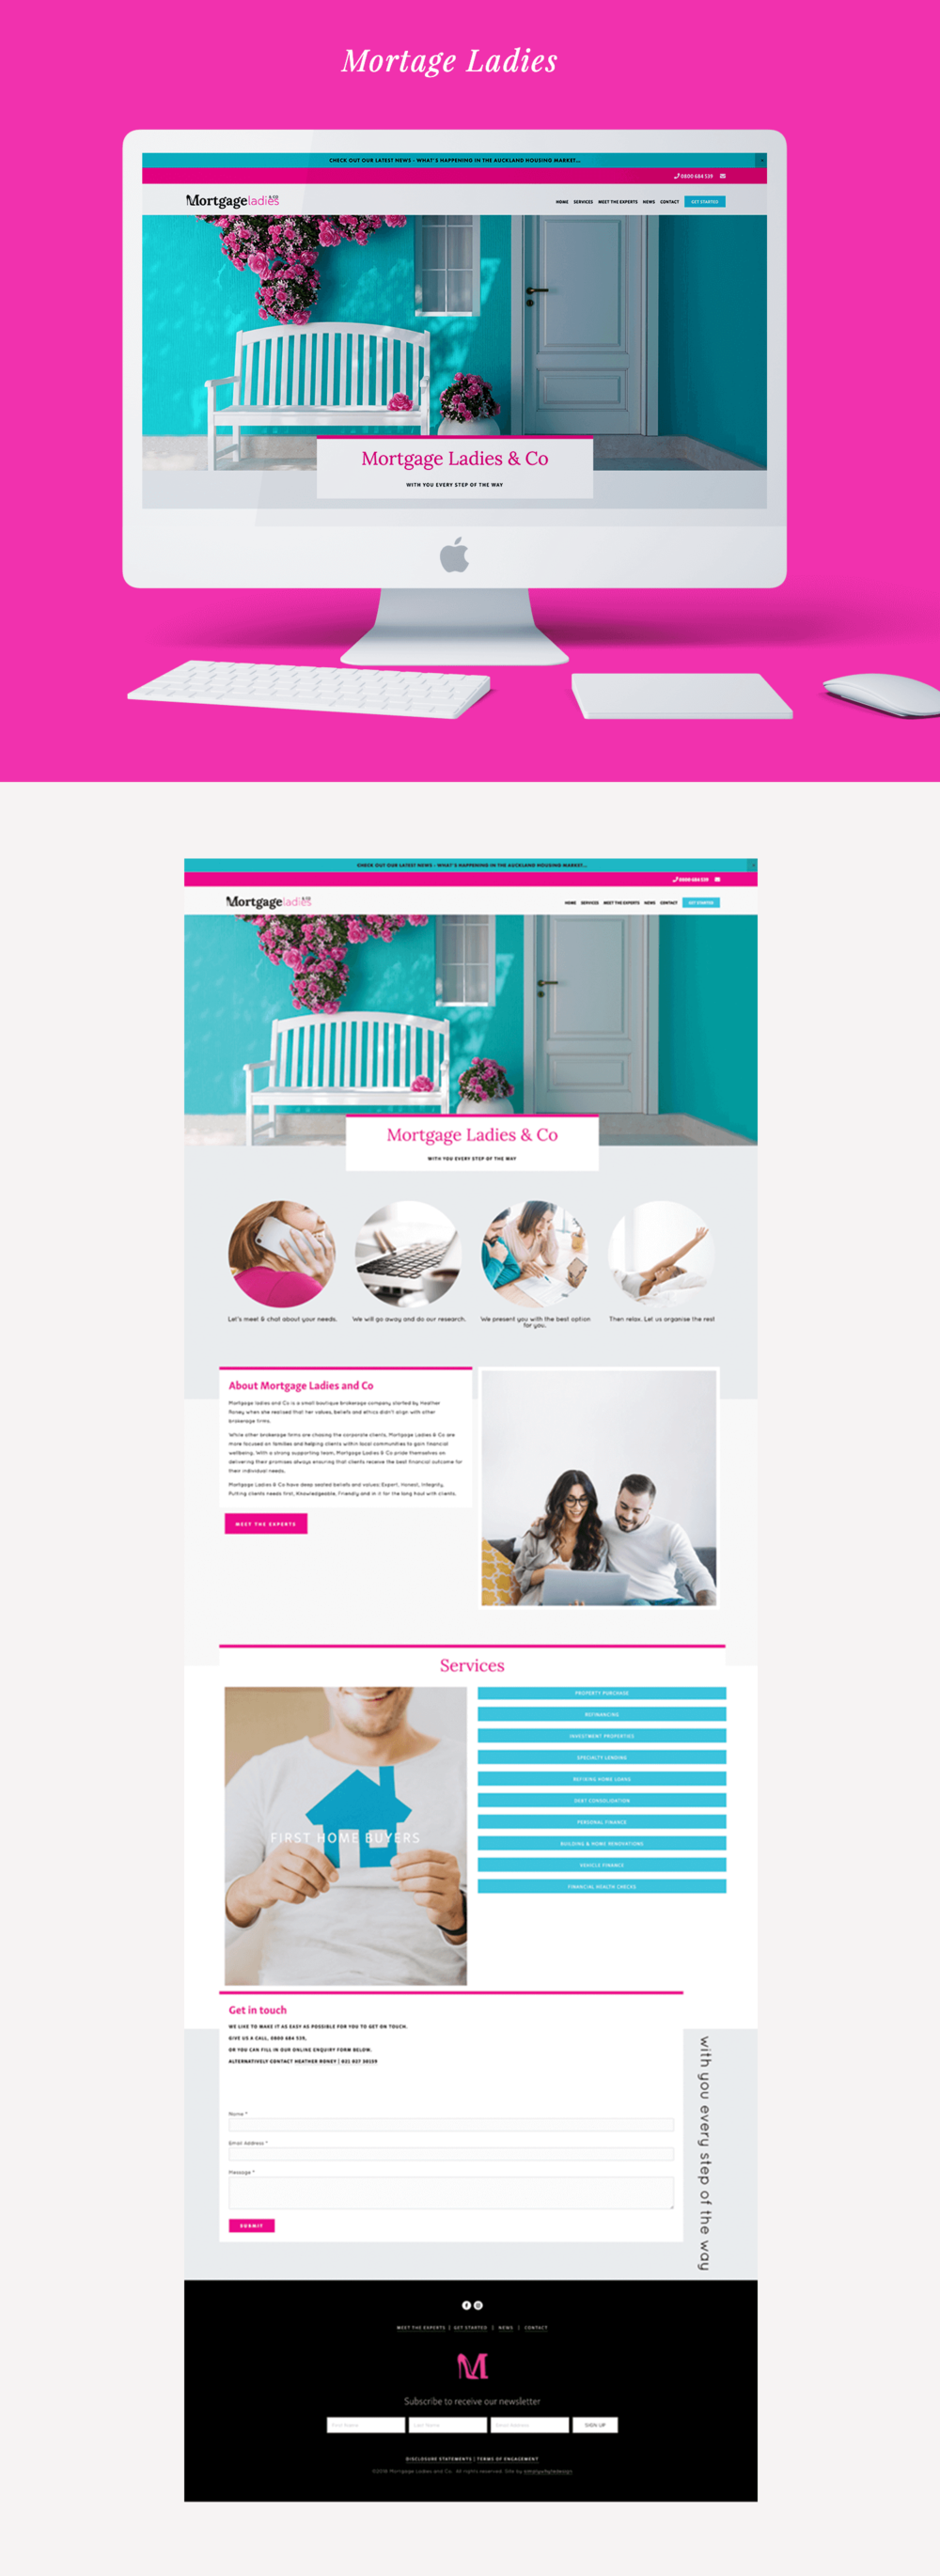 Mortgage ladies simply whyte design squarespace